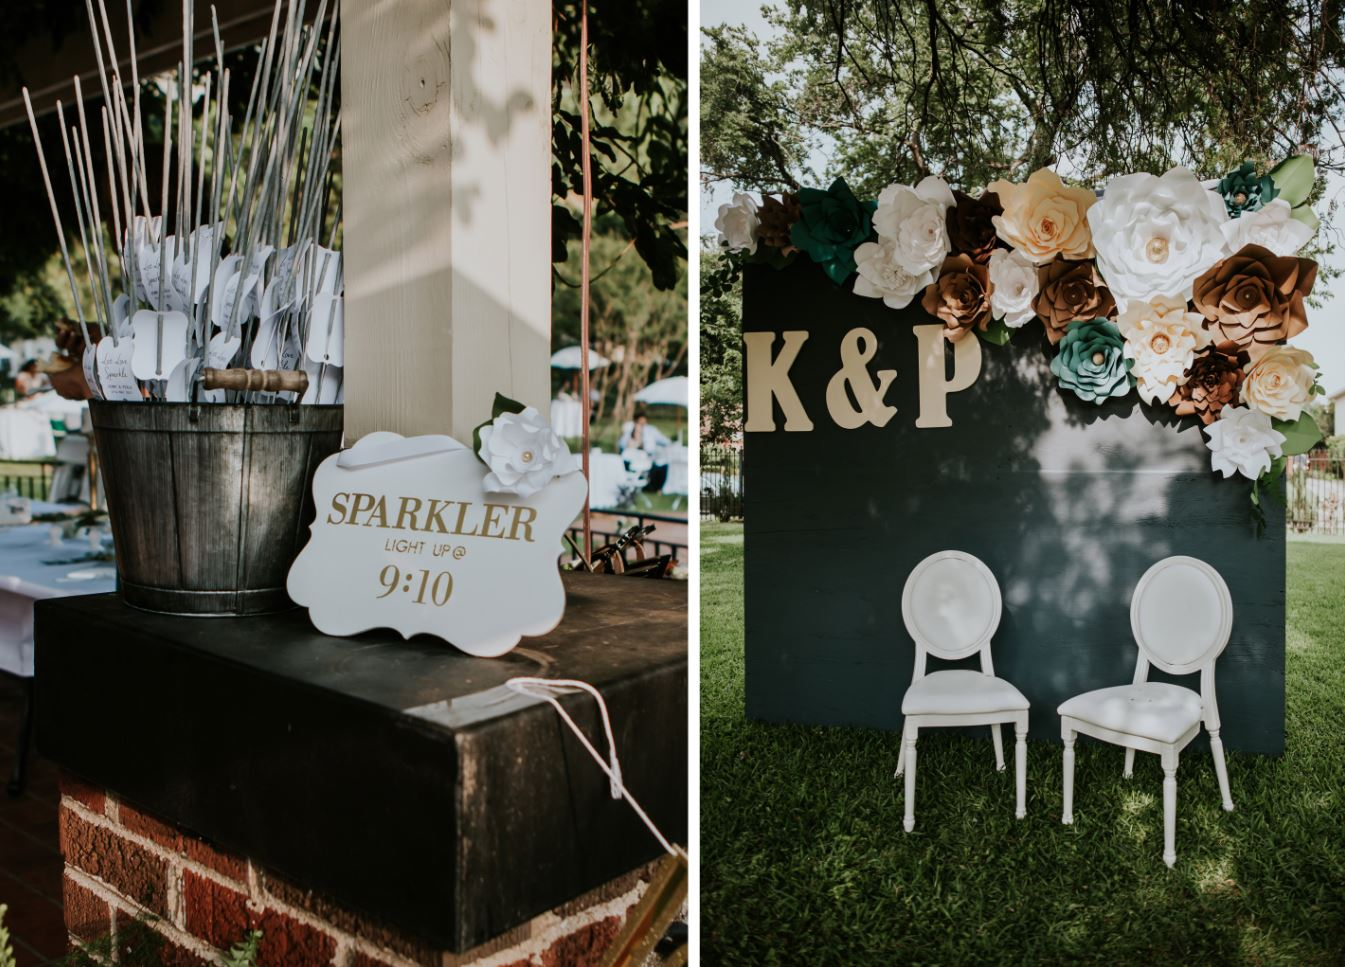 Wedding Details // Photo Booth and Sparklers // Modern Chic Mansion Wedding